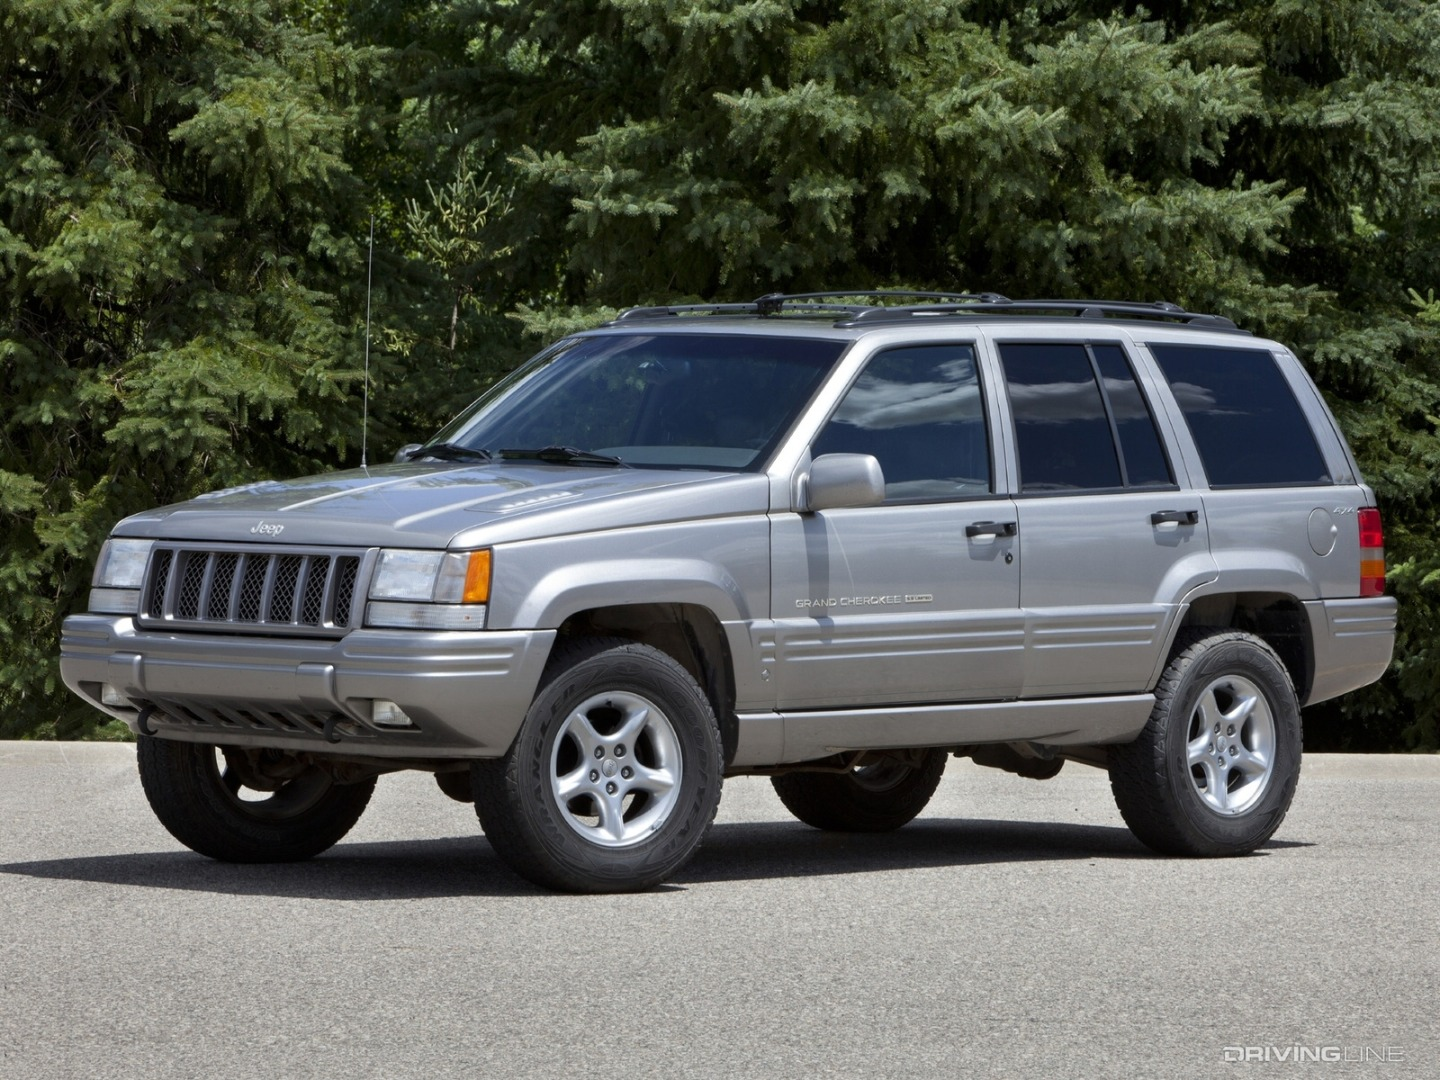 the 98 jeep grand cherokee 5 9 limited